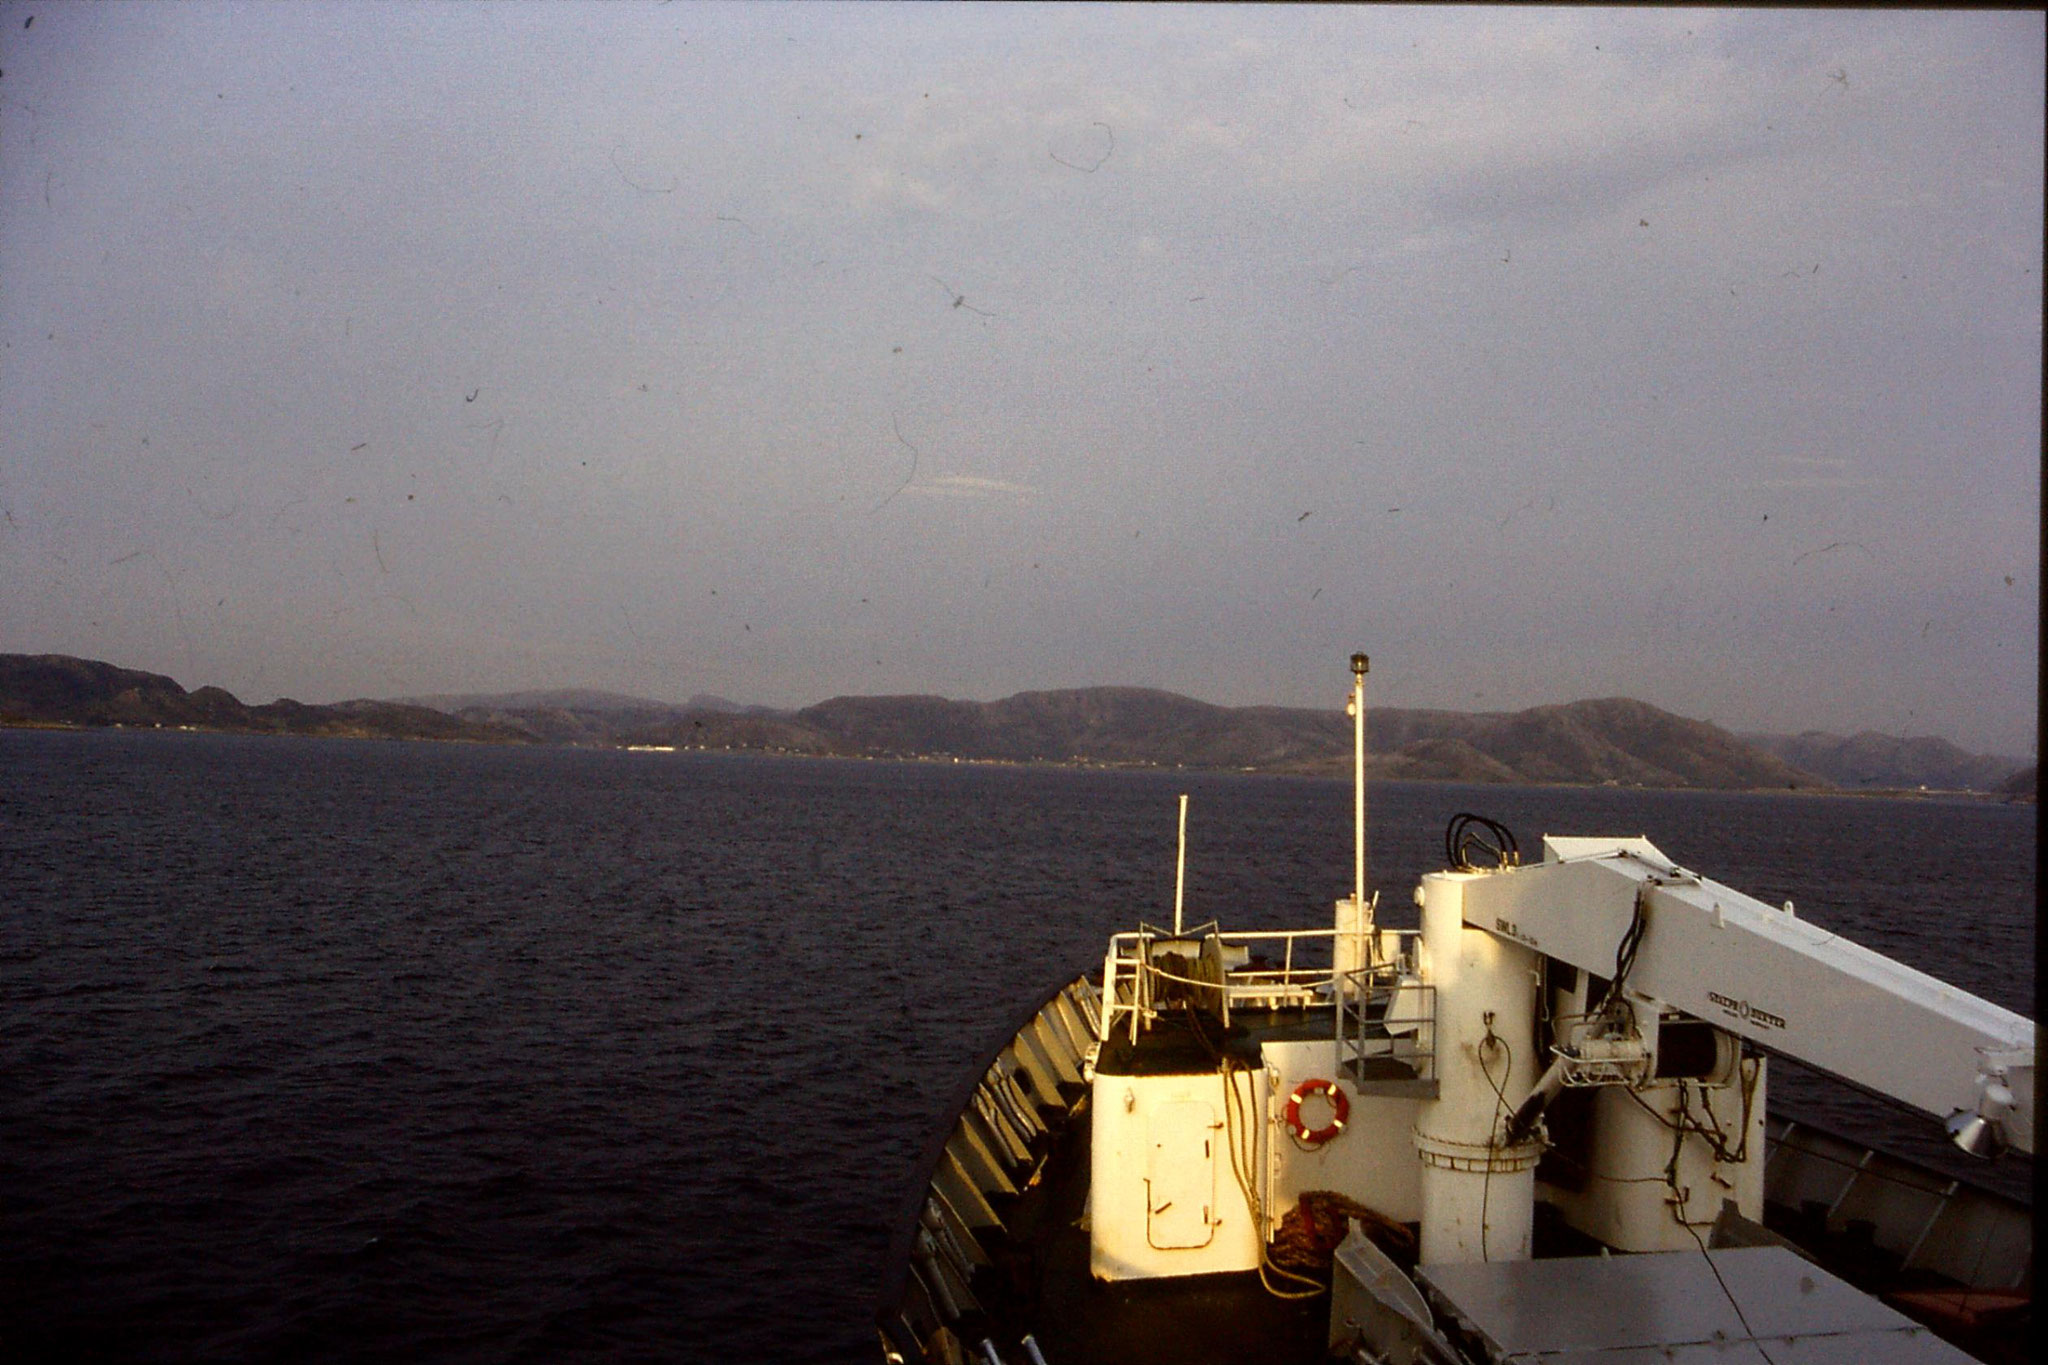 23/9/1988: 20: prow of Kong Olav near Stoksund